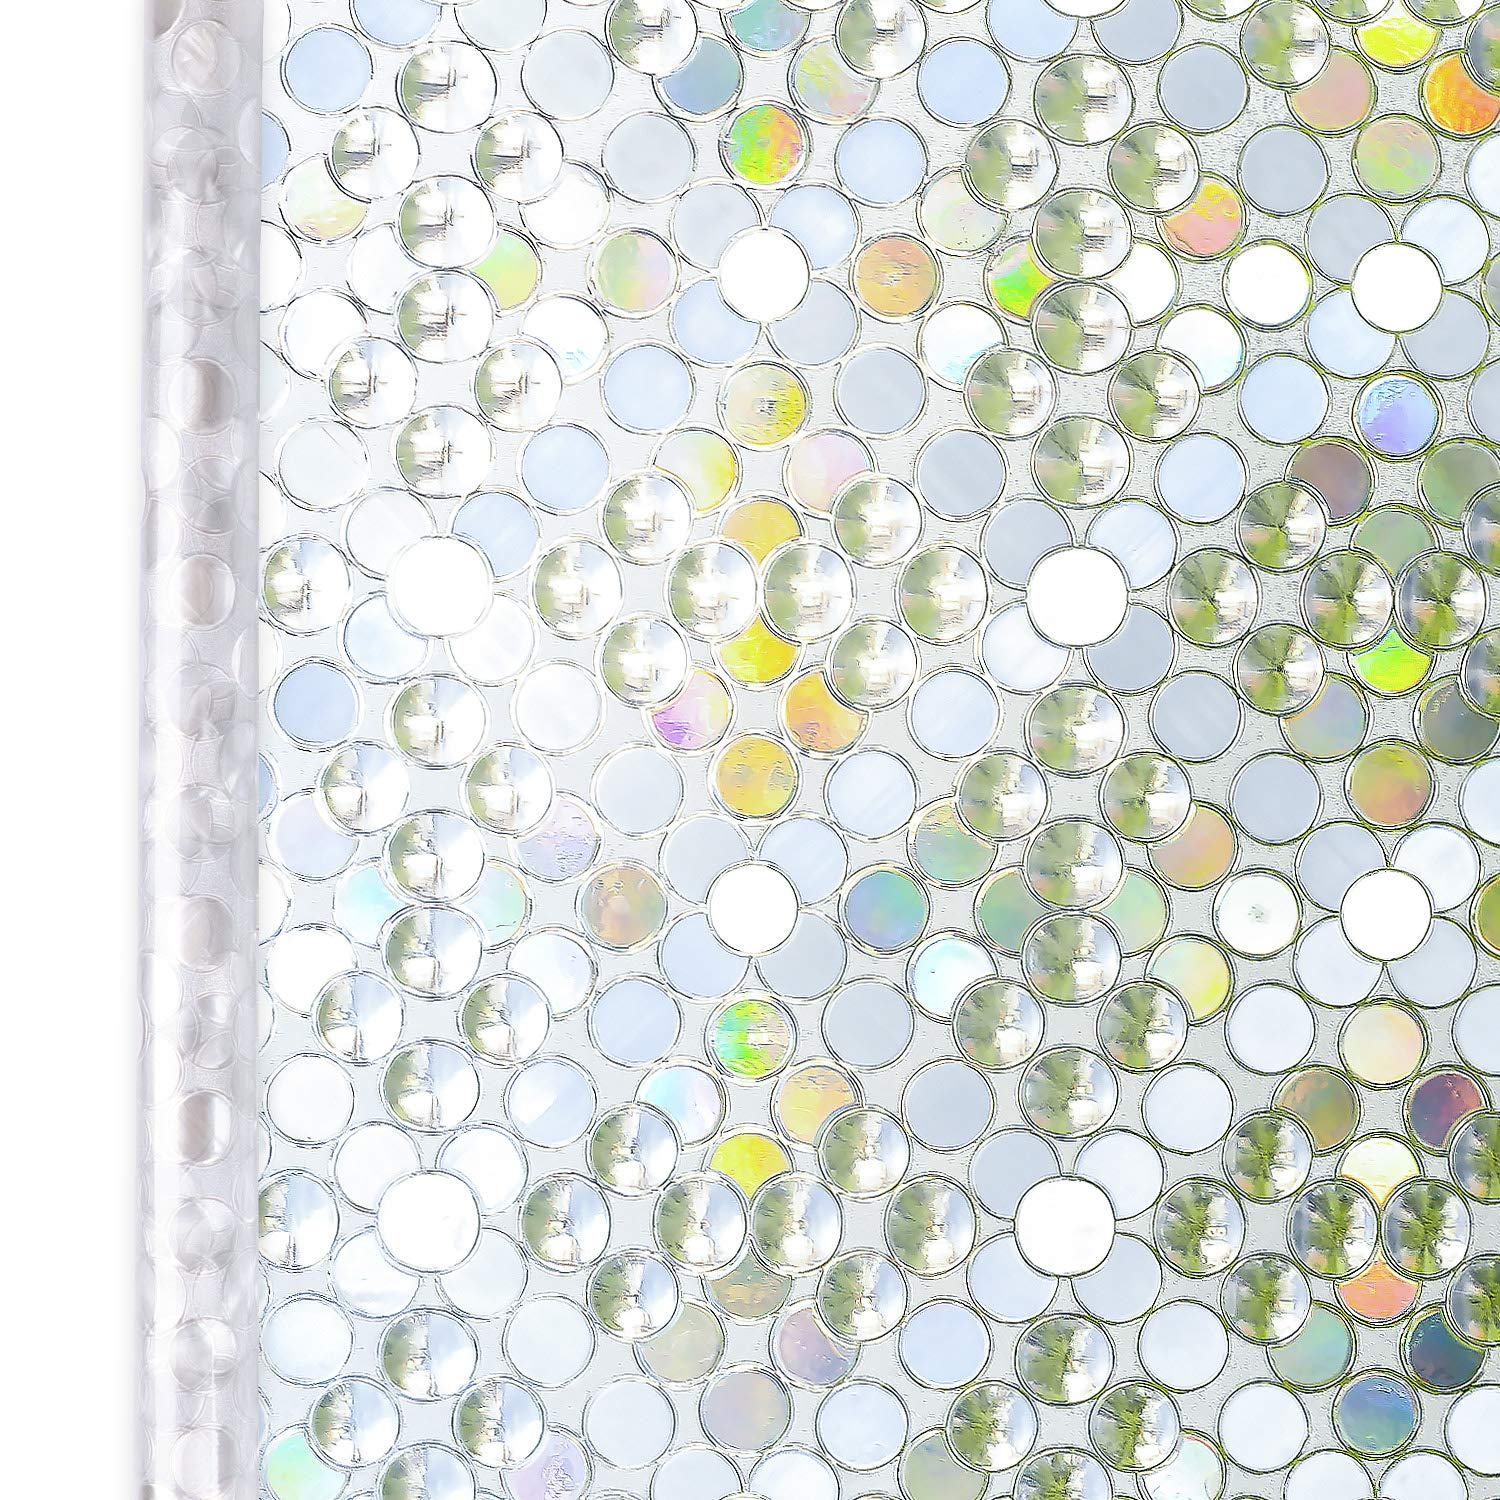 Homein® Privacy Window Film Bubble Pattern 44.5x200CM Thick Upgrade, Self Adhesive Rainbow Effect Decorative Glass Frosted Sticker Static Cling Anti UV Reusable Obscure Cover for Door Blind Bedroom HOMEIN CO. LTD